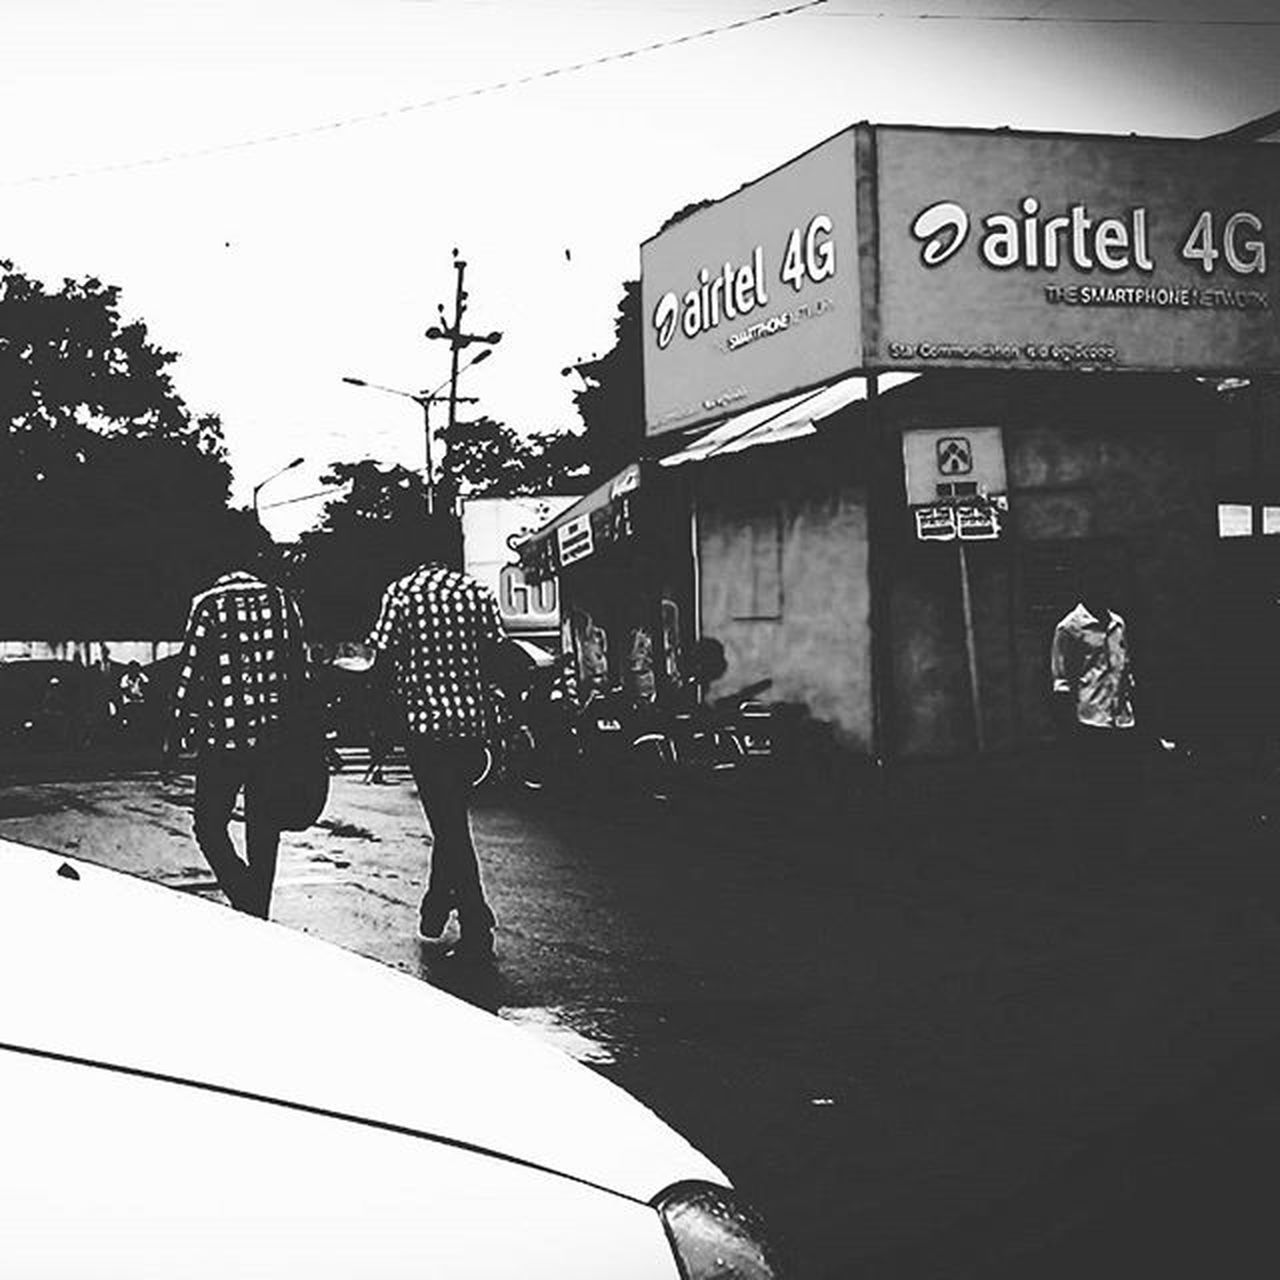 Street India Indianstreets _soi Bnw Bnw_captures Bnw_life Bnw_society Bnwindia Blackandwhite Timeless Entranced Spellbound Capturinglife Enraptured Serene Beautyliesintheeyesofthebeholder Beautyliesinunknownplaces Beautyiseverywhere Serendipity Beautifulbhubaneswar Odishagram Mondaymood Amateur Camerateur spottly indiatravelgram